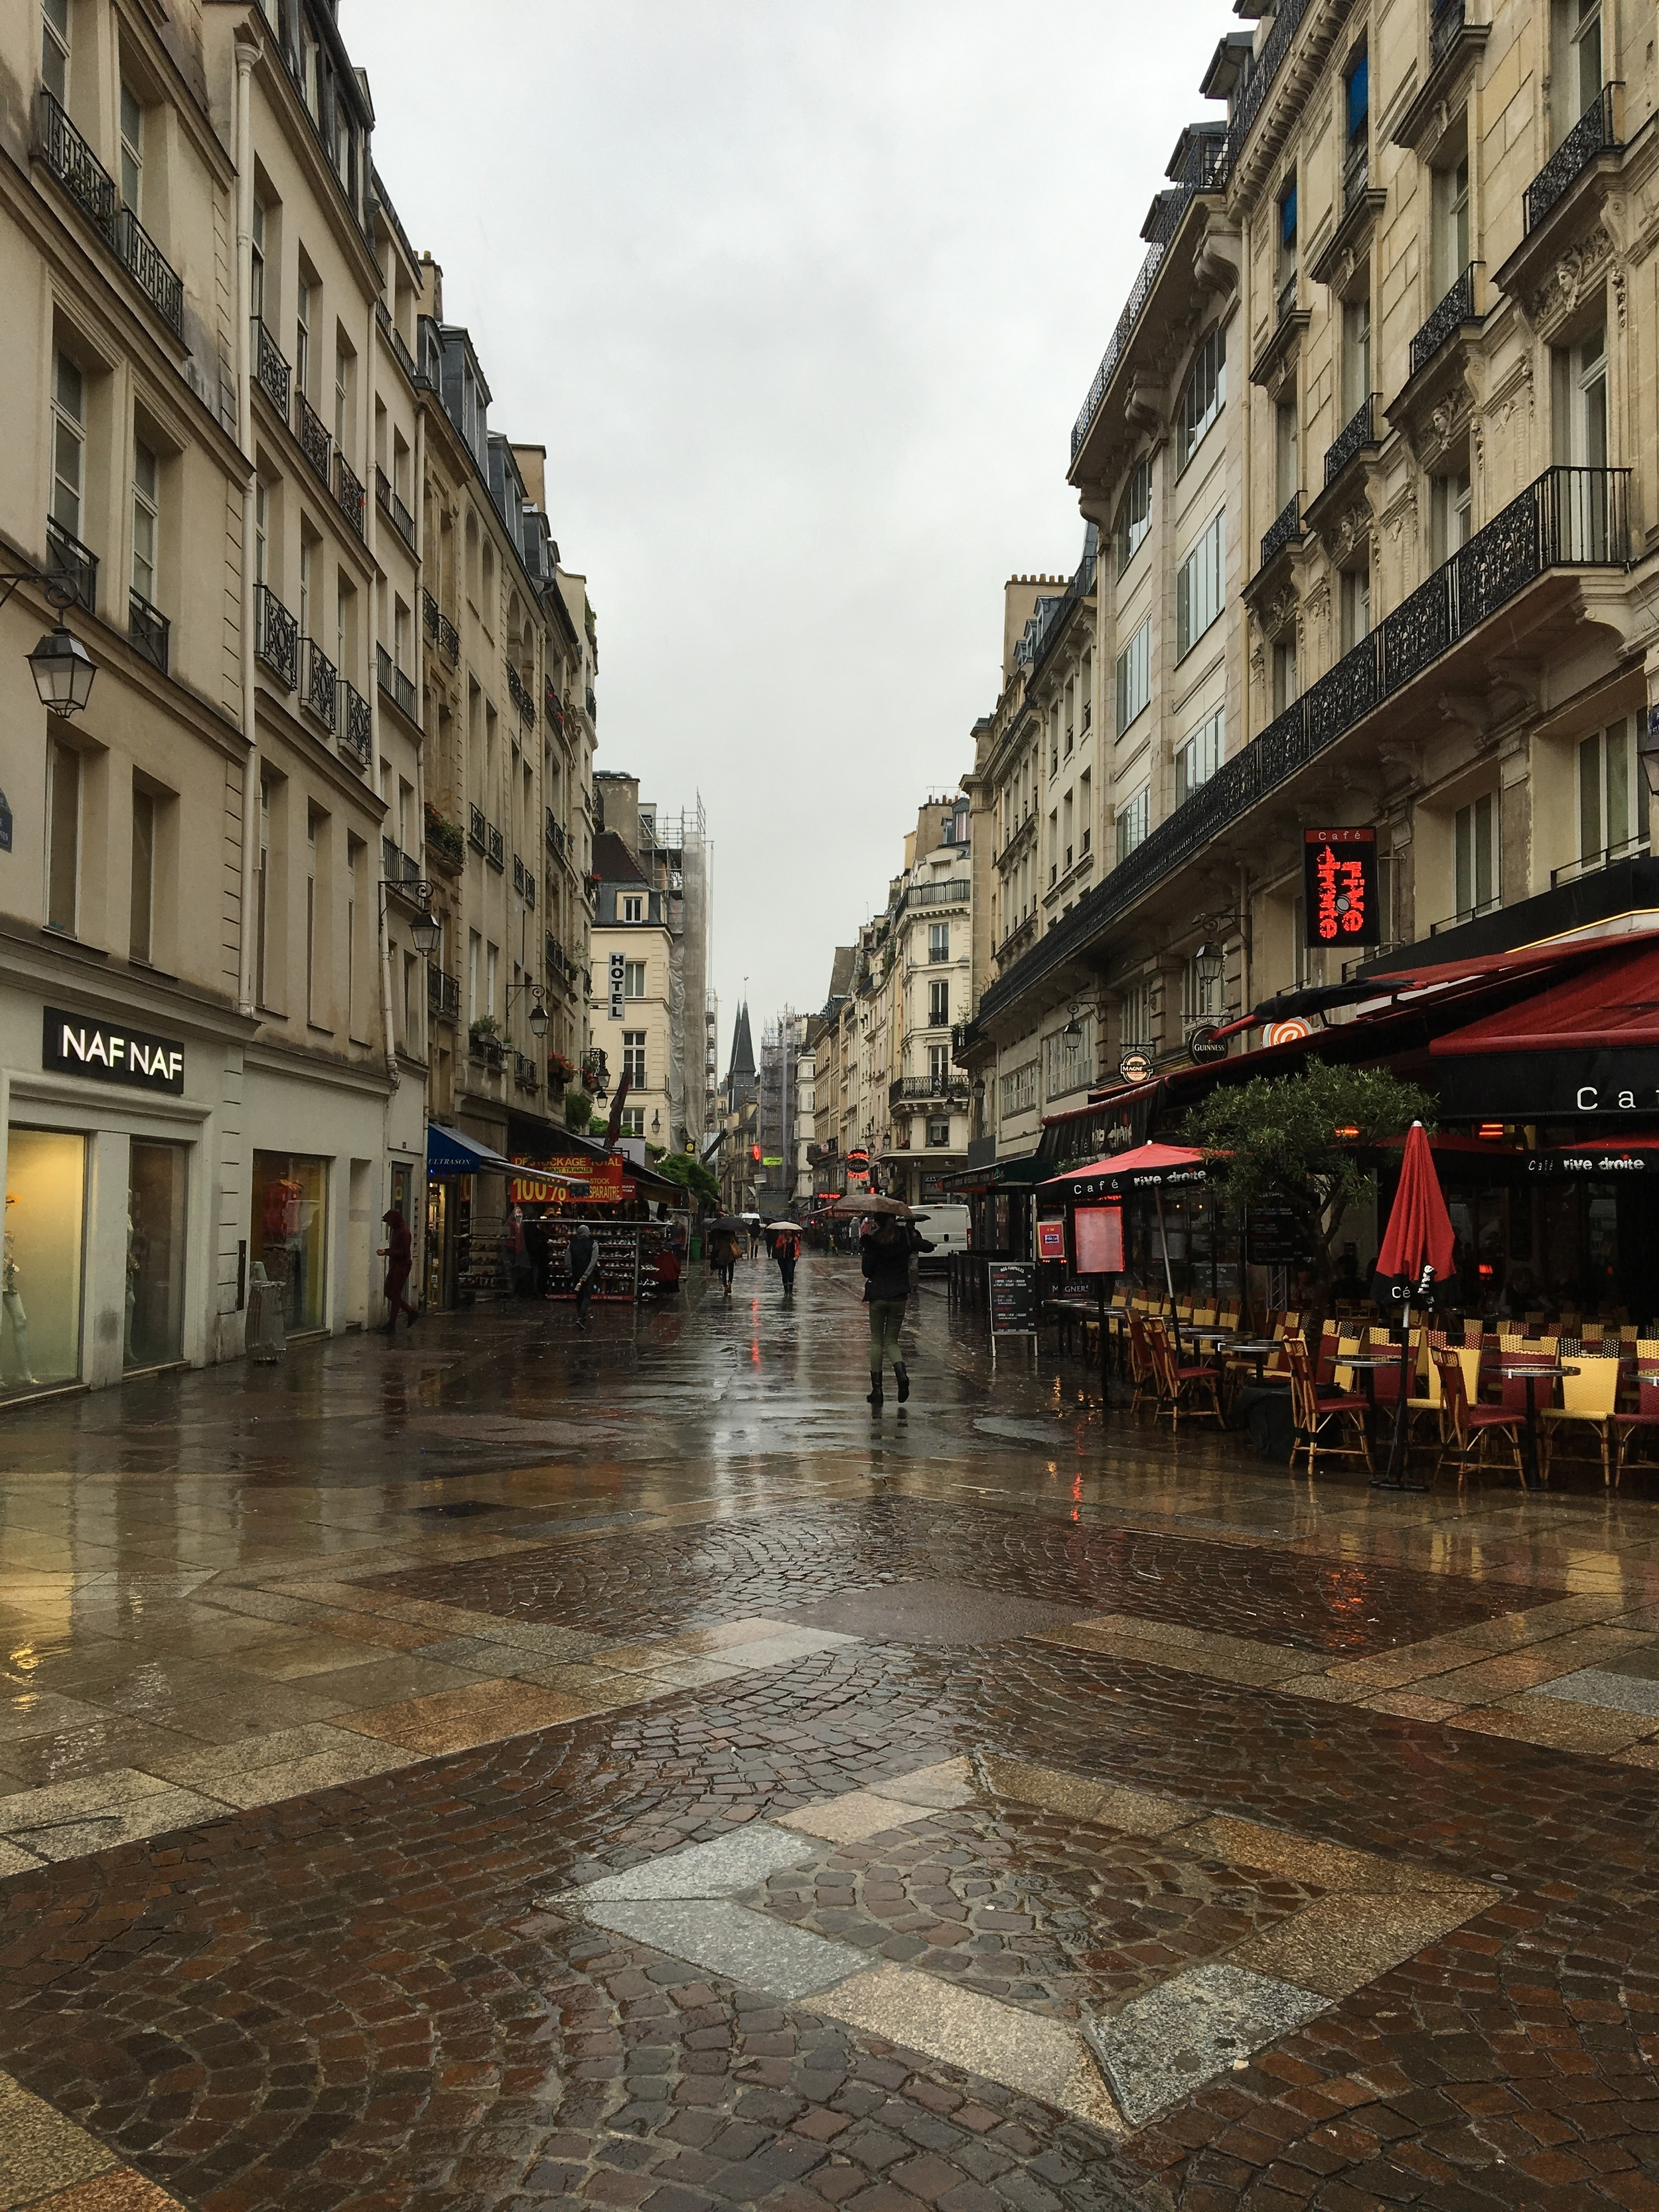 A street view in Les Halles